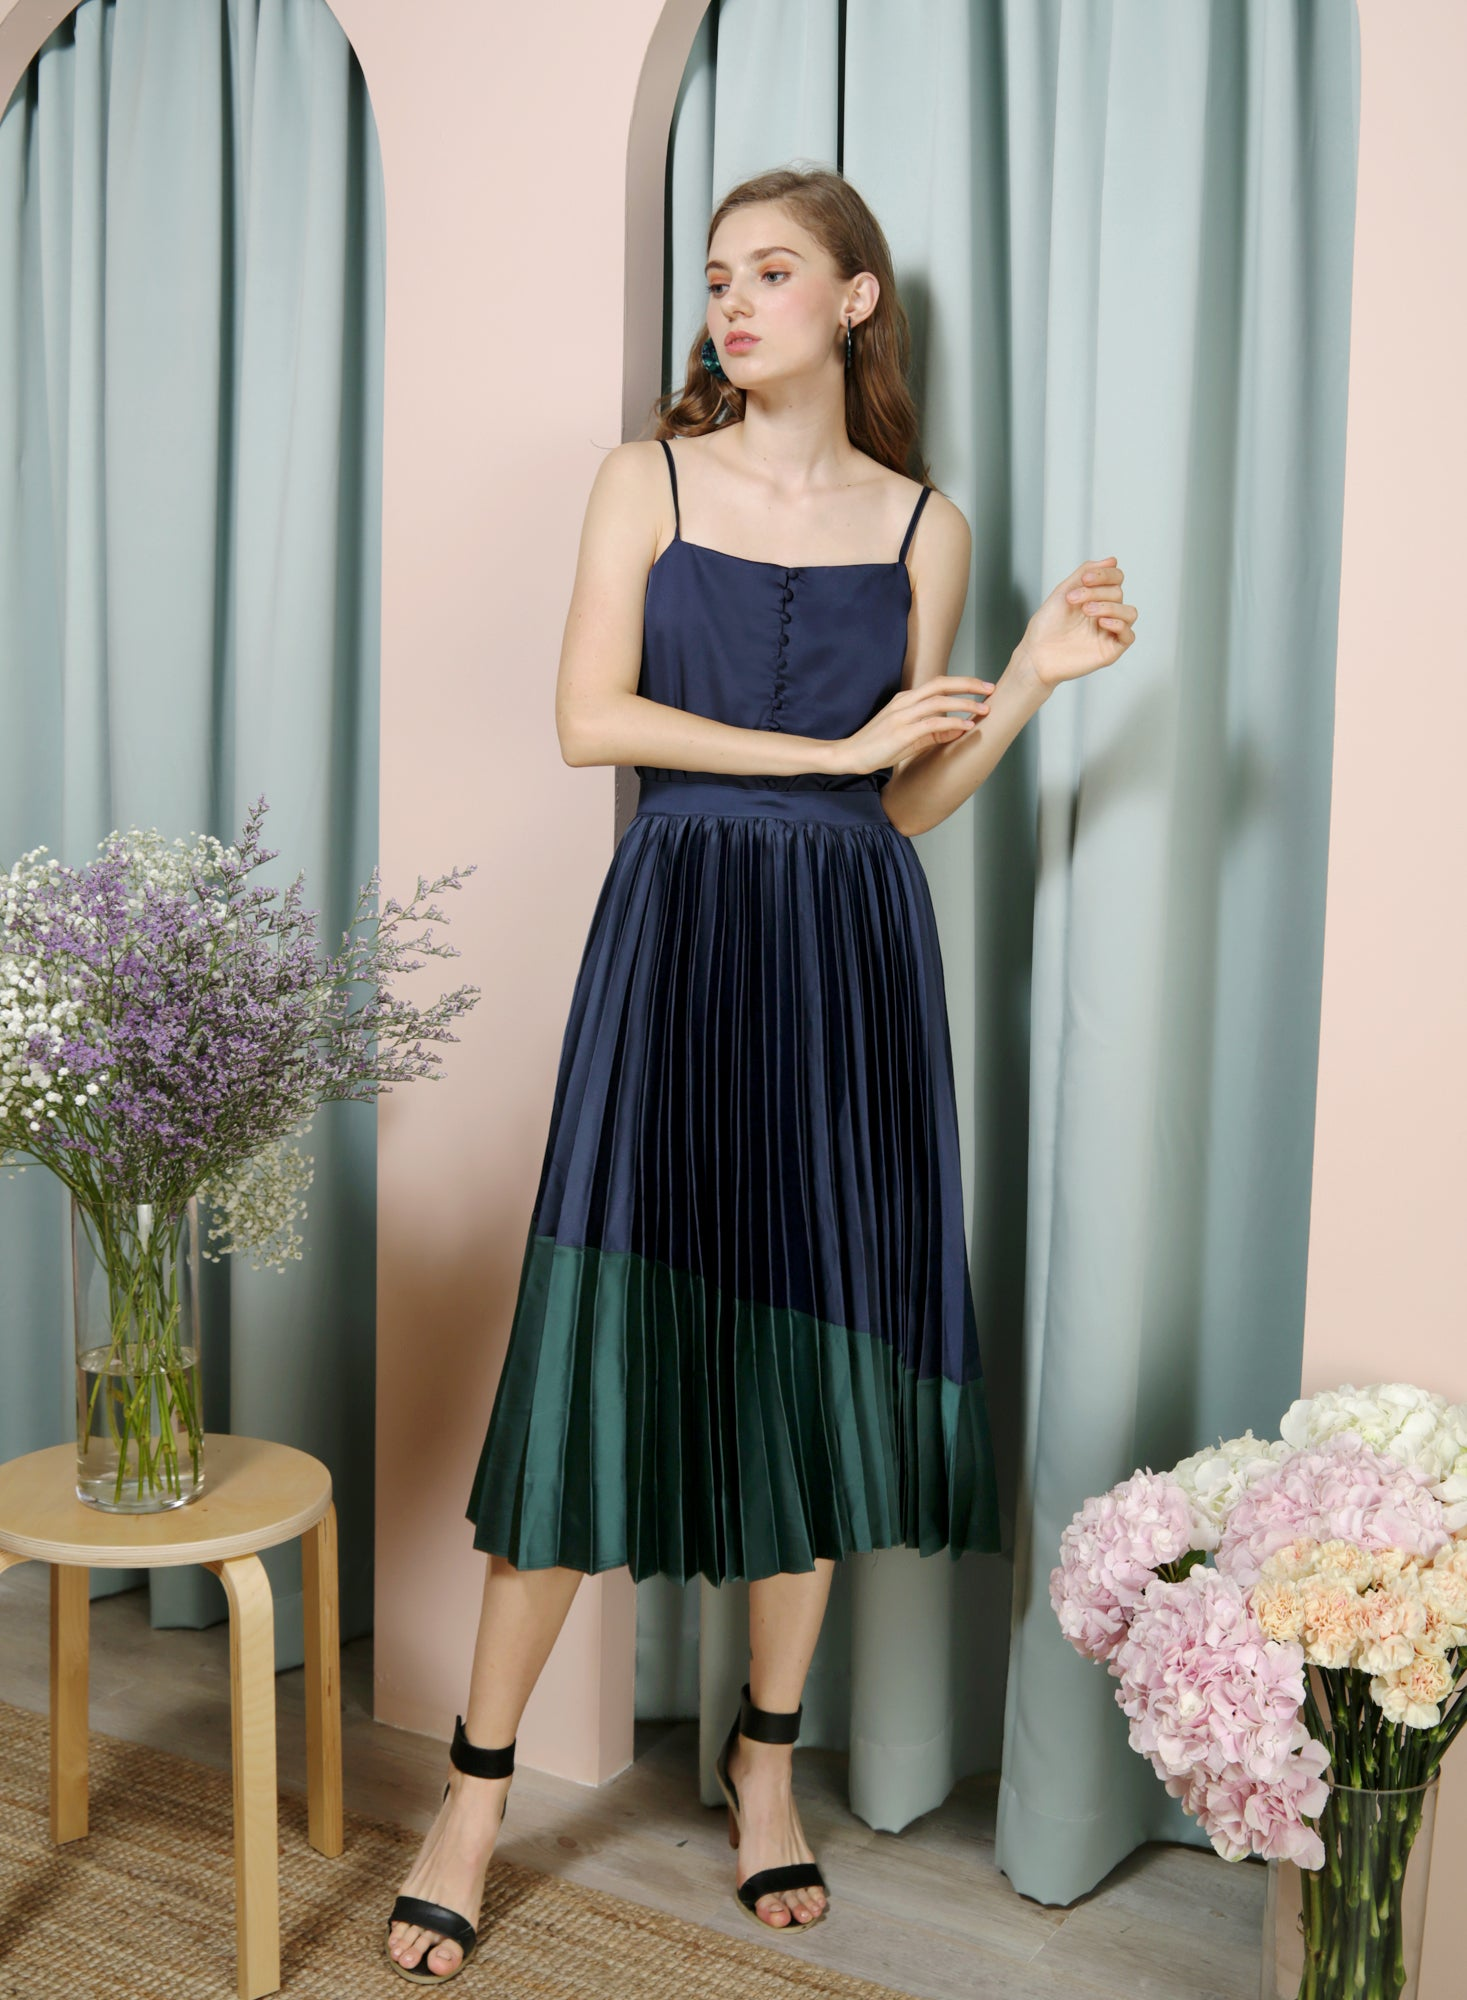 Carousel Duo Tone Pleated Skirt (Navy/Forest) at $ 38.50 only sold at And Well Dressed Online Fashion Store Singapore